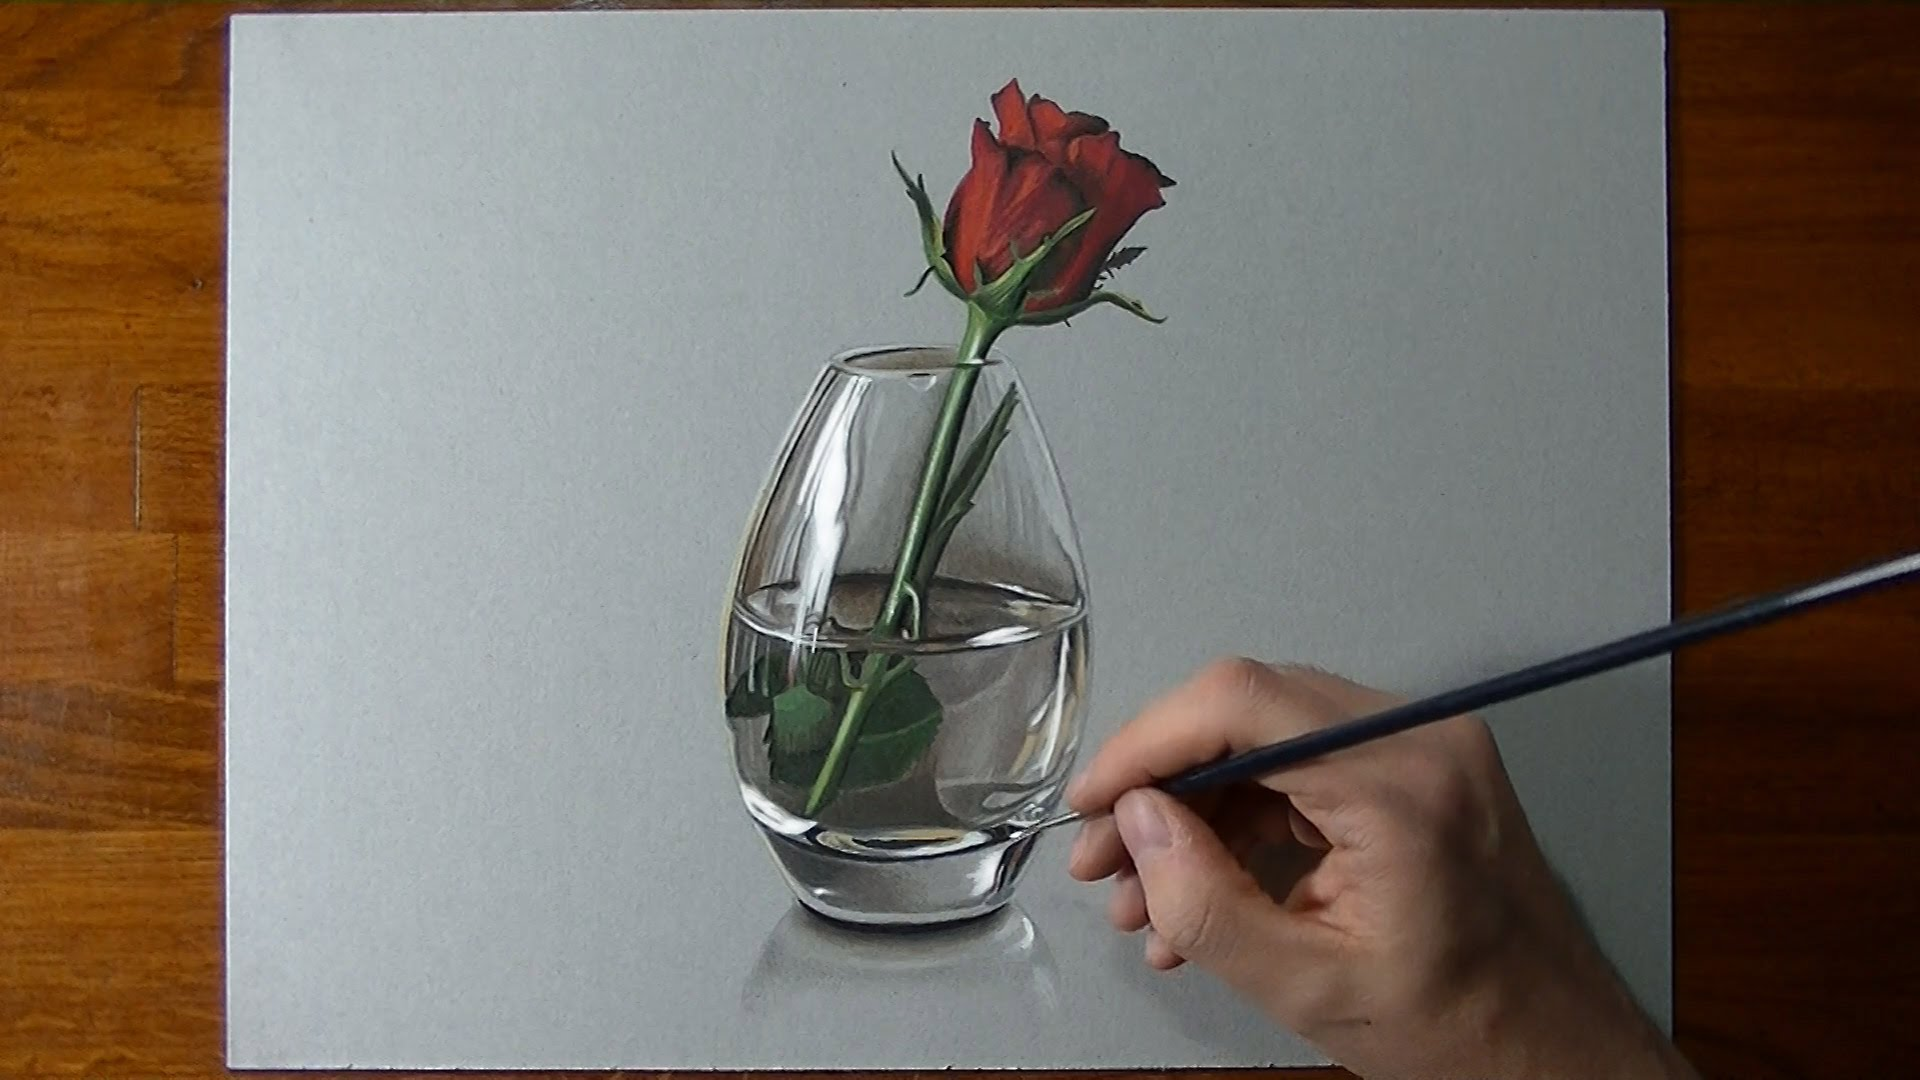 Drawn red rose real rose Glass red vase in a